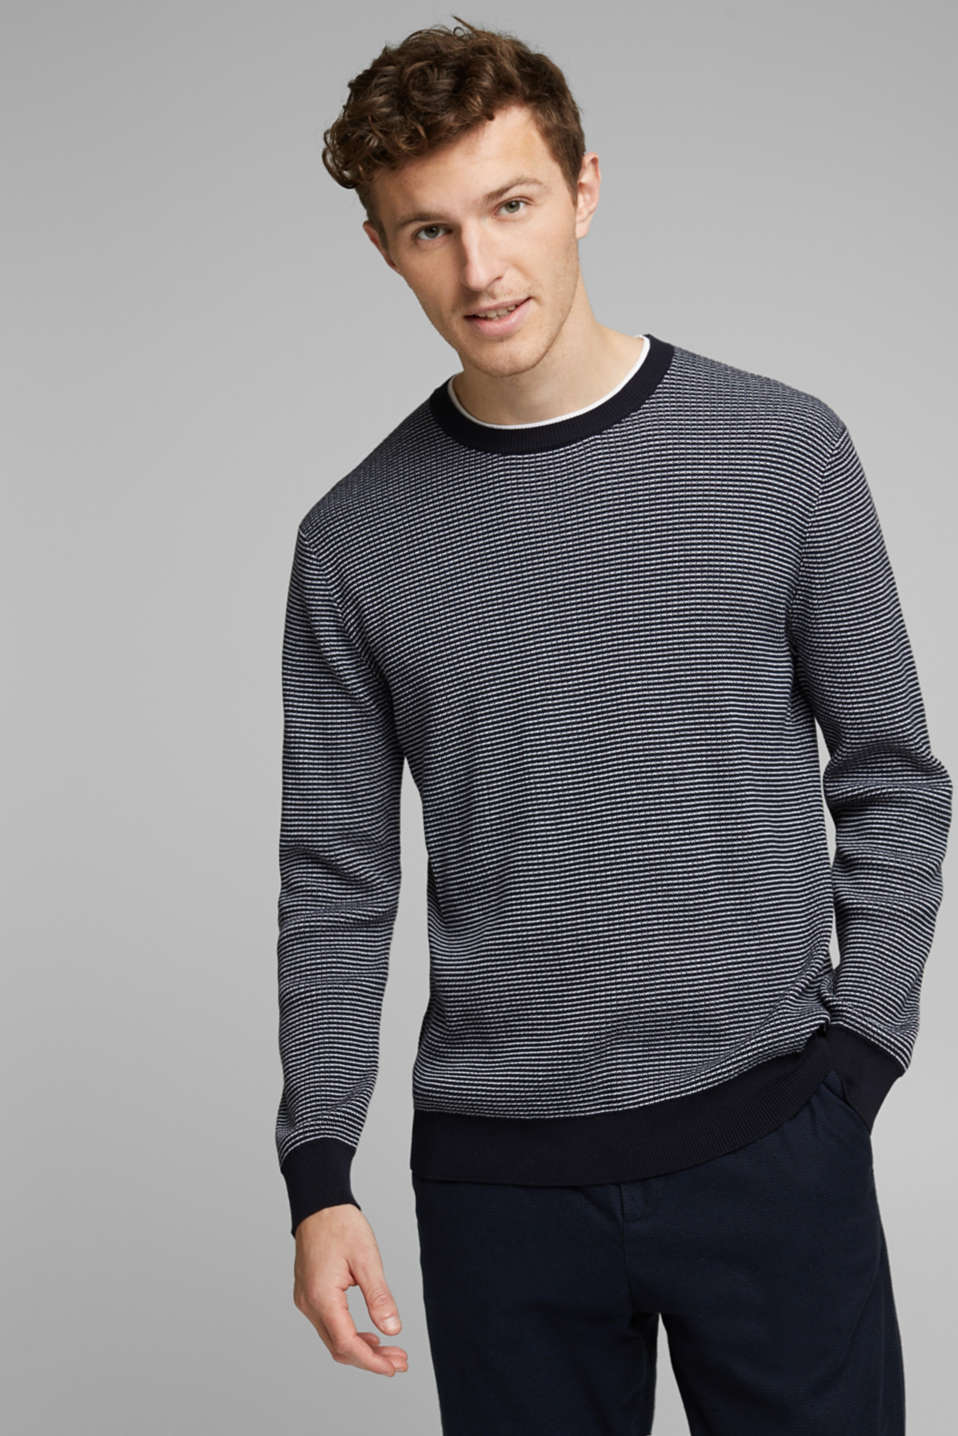 Esprit - Two-tone jumper made of 100% organic cotton